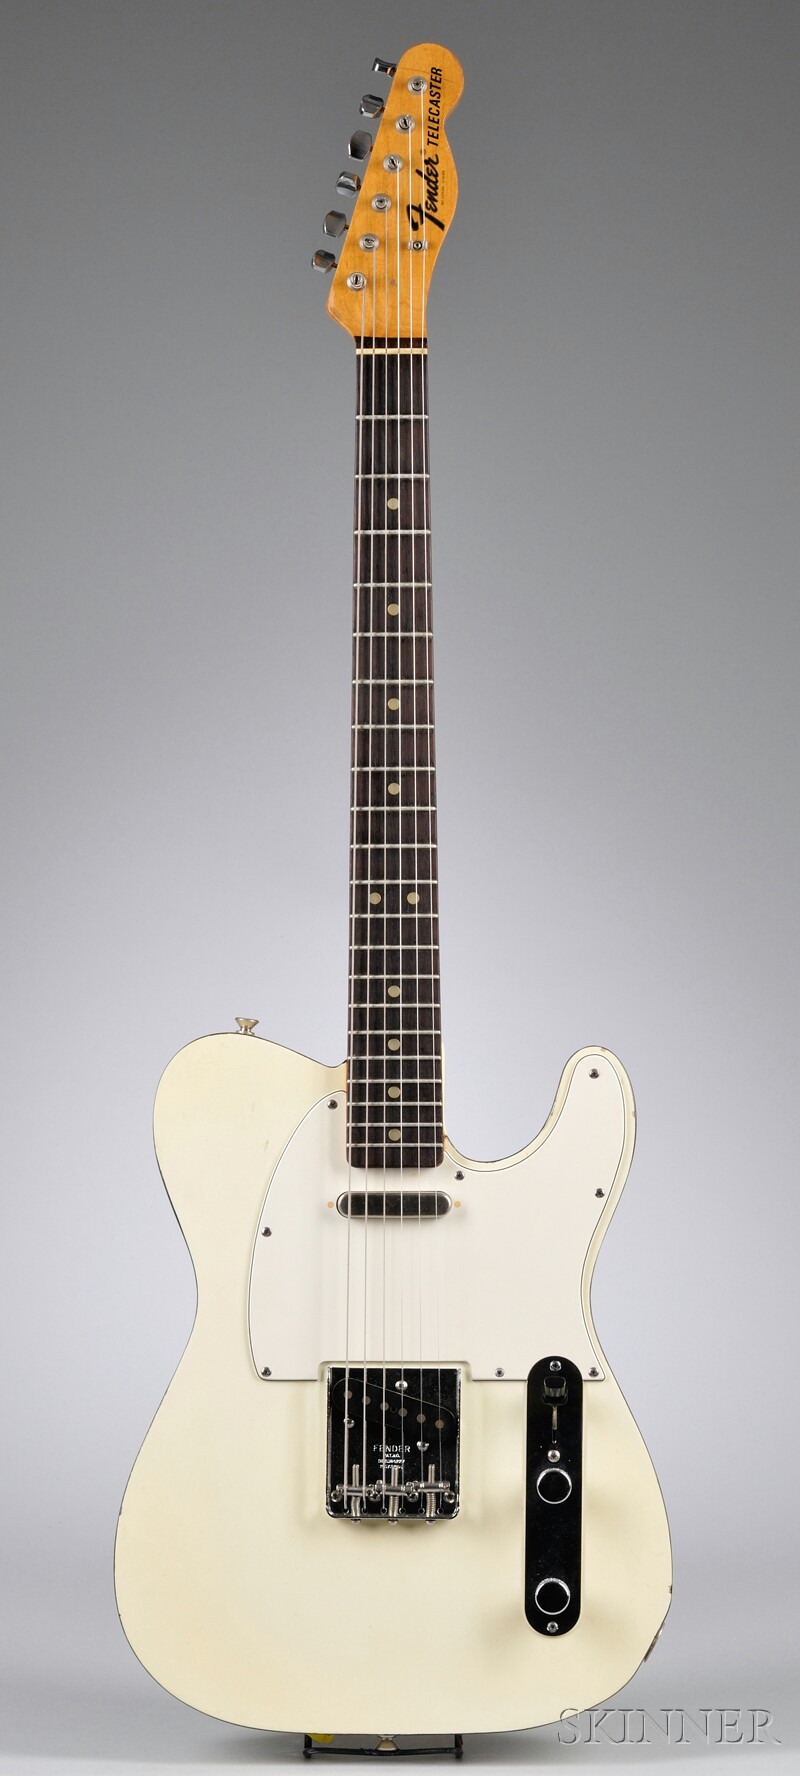 American Electric Guitar, Fender Musical Instruments, Santa Ana, 1967, Model   Telecaster Custom,